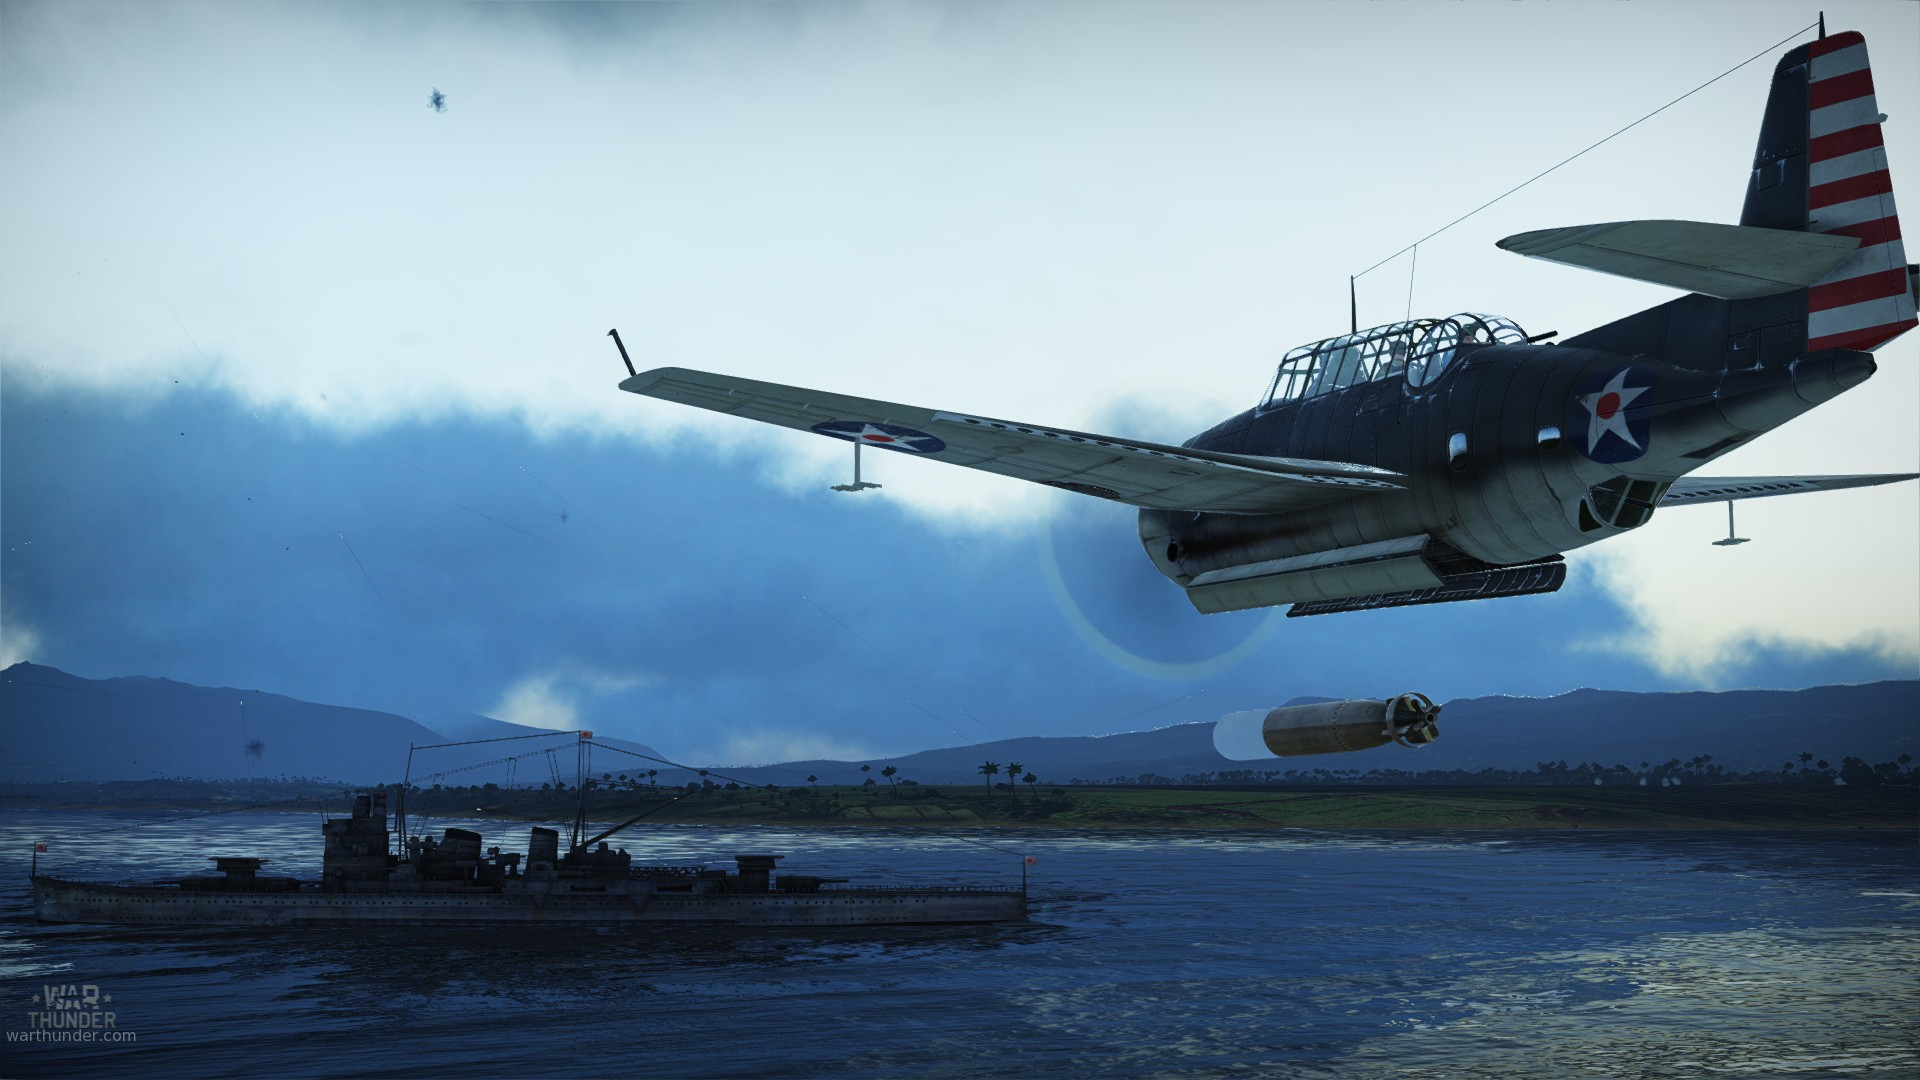 War thunder next gen mmo combat game for pc mac and playstation4